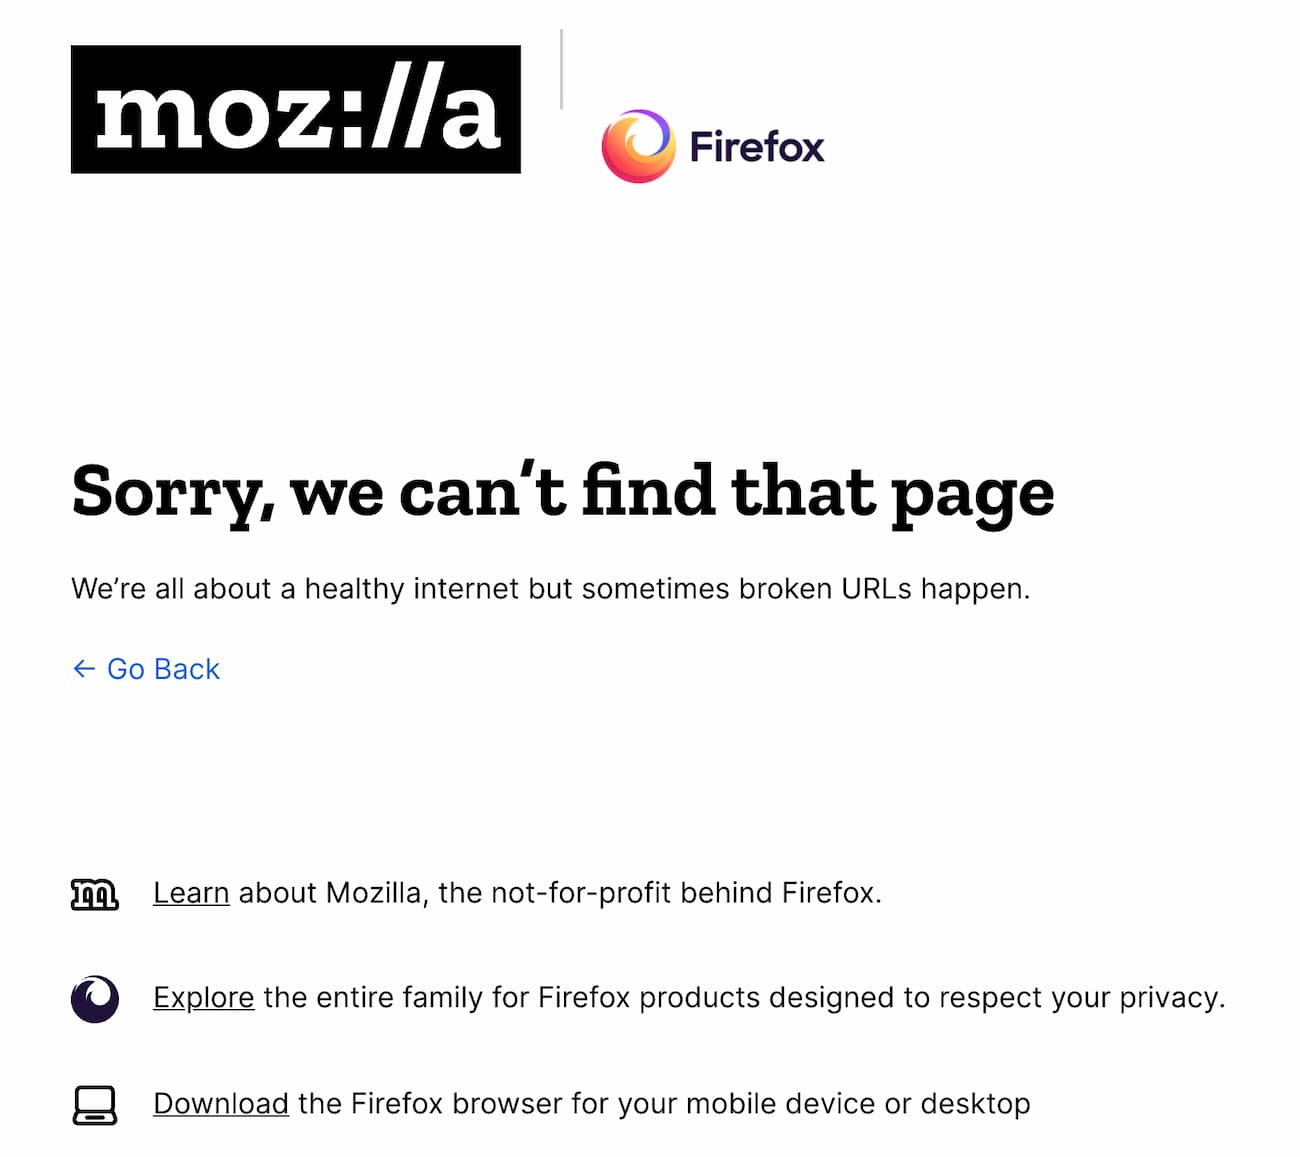 404 error page displaying information that the page you've searched for couldn't be found on the server.